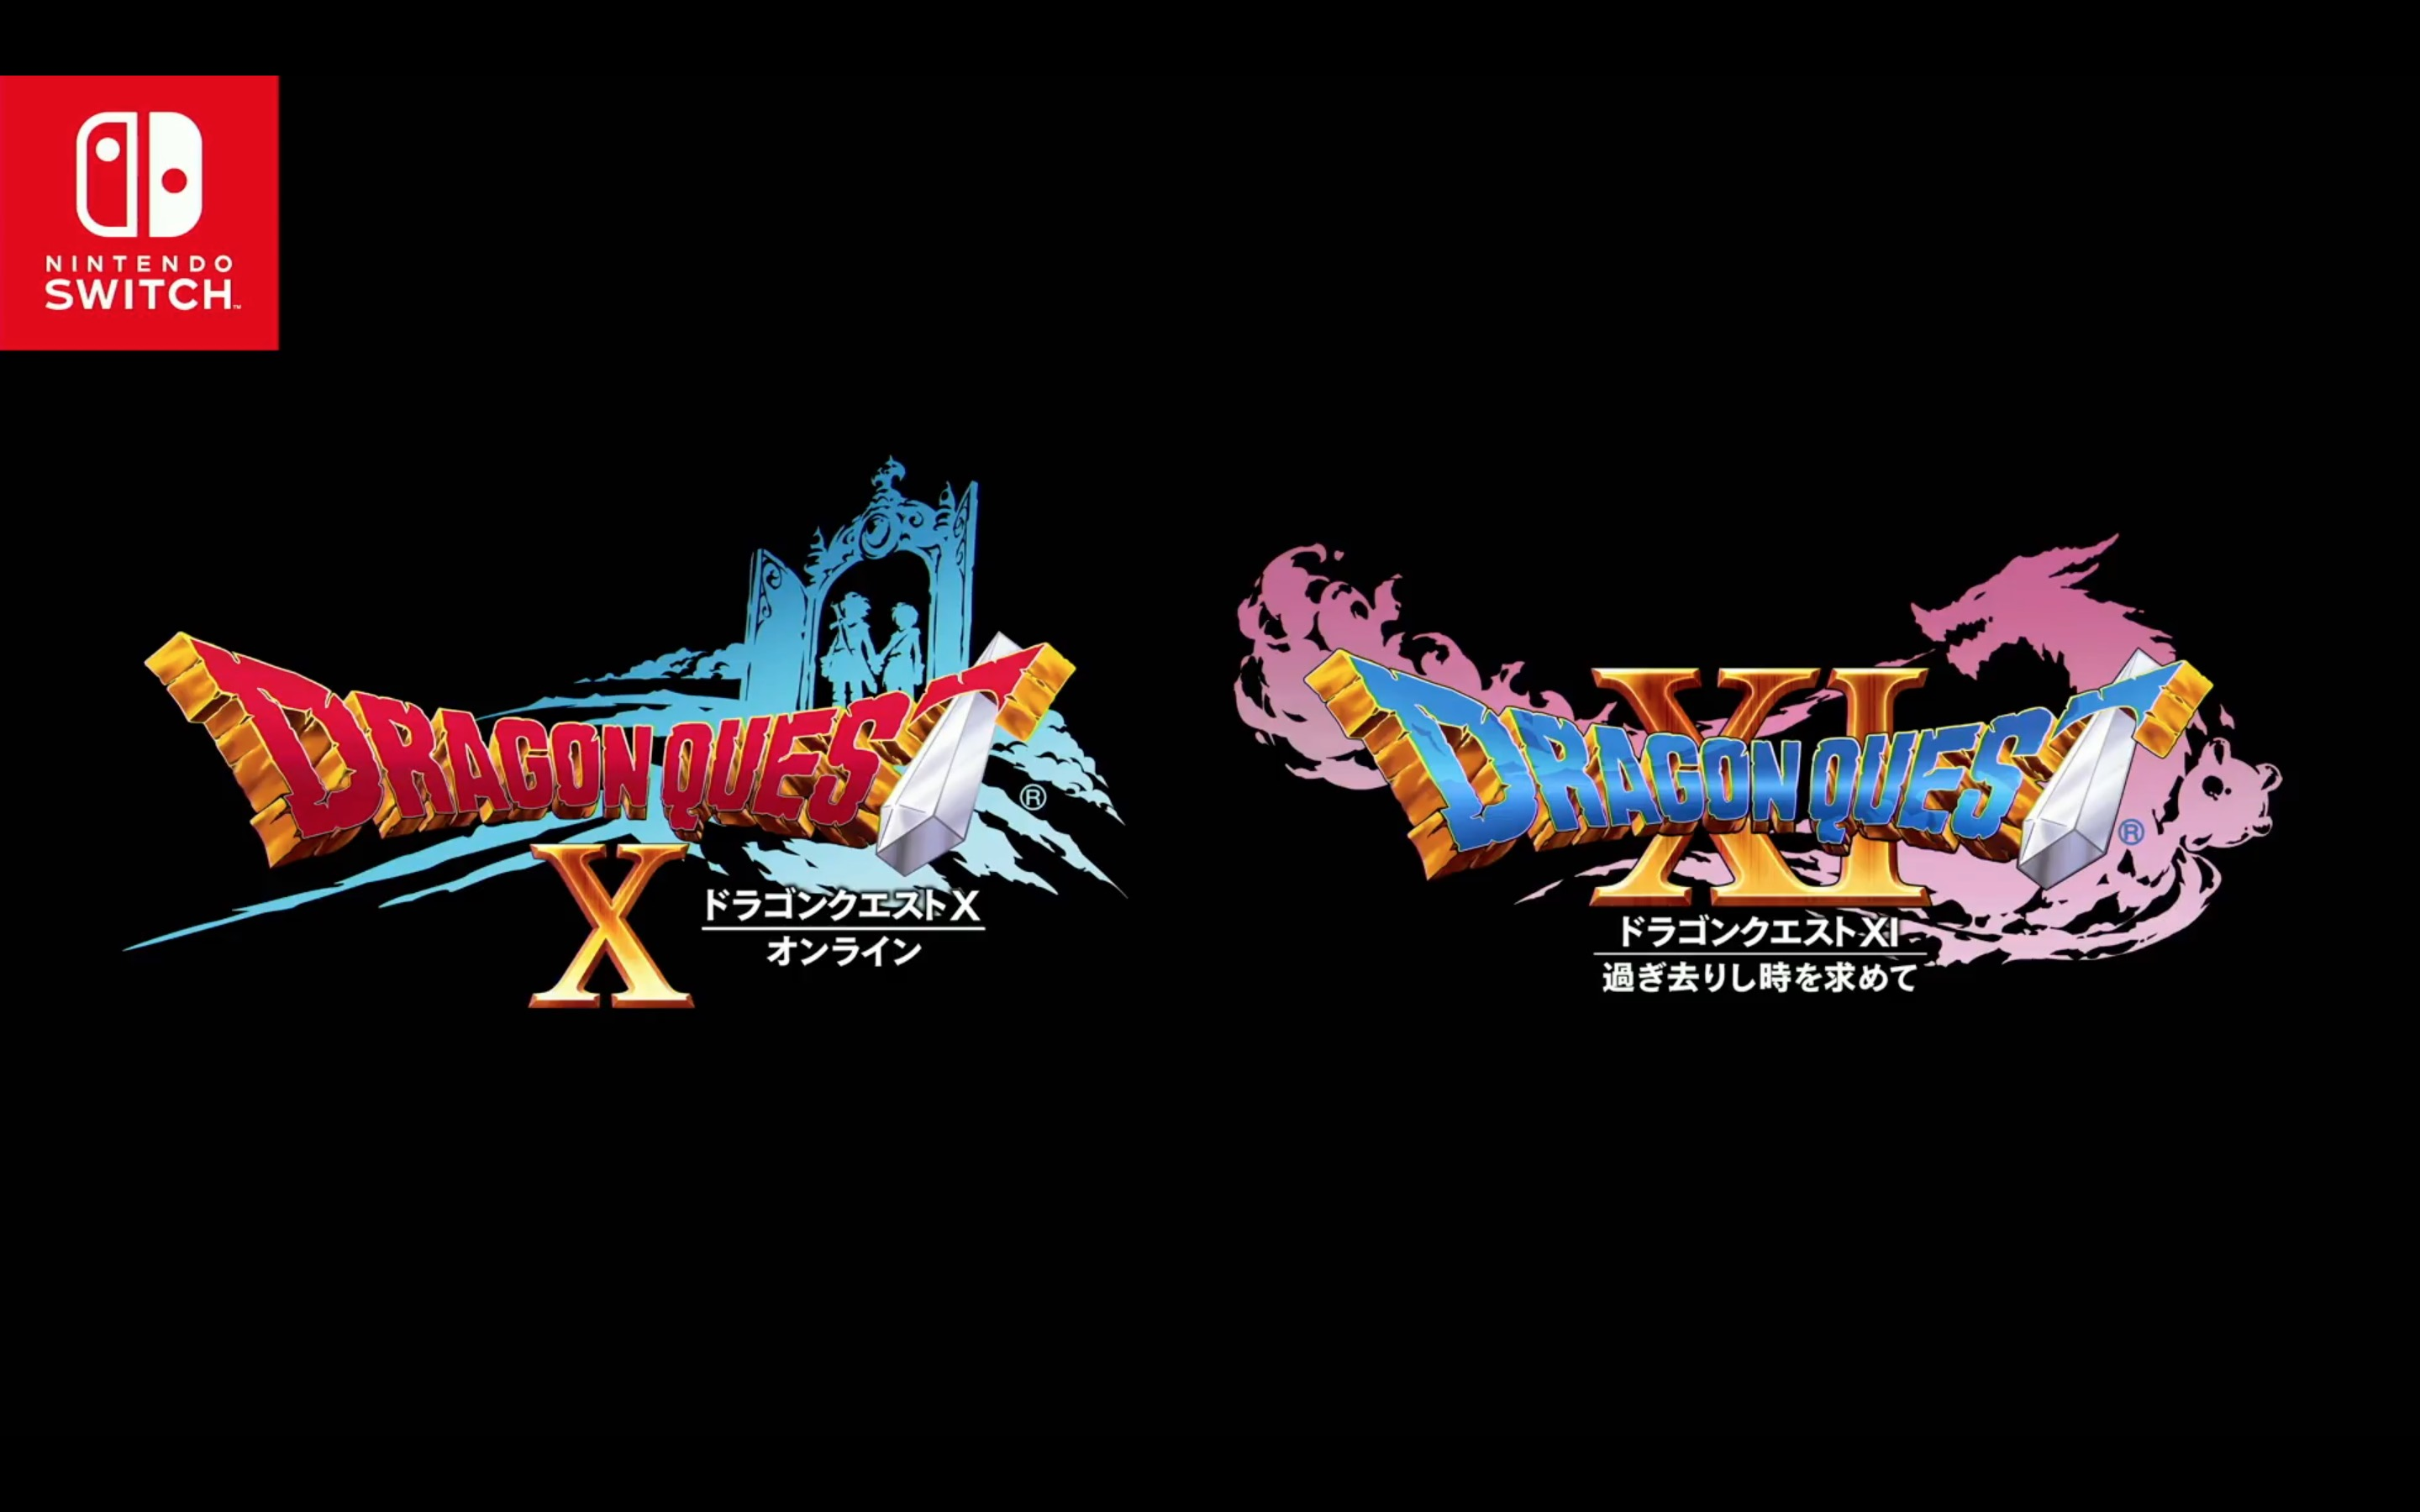 Dragon Quest X & XI title screen from Nintendo Switch presentation